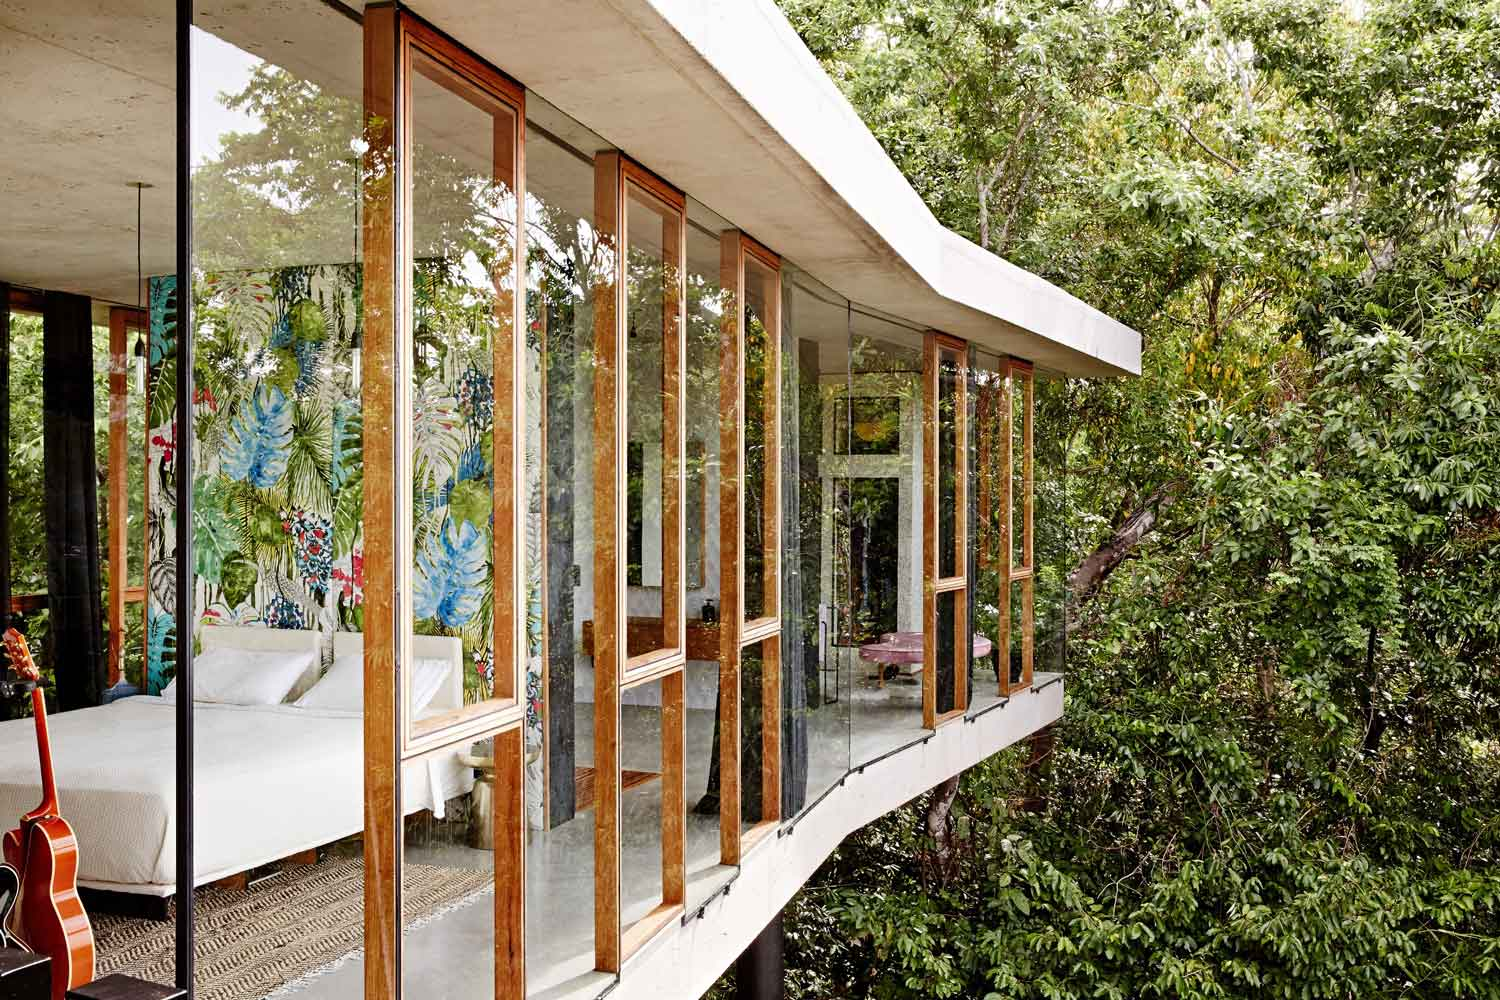 Planchonella House by Jesse Bennett Architect. Photo by Sean Fennessy | Yellowtrace